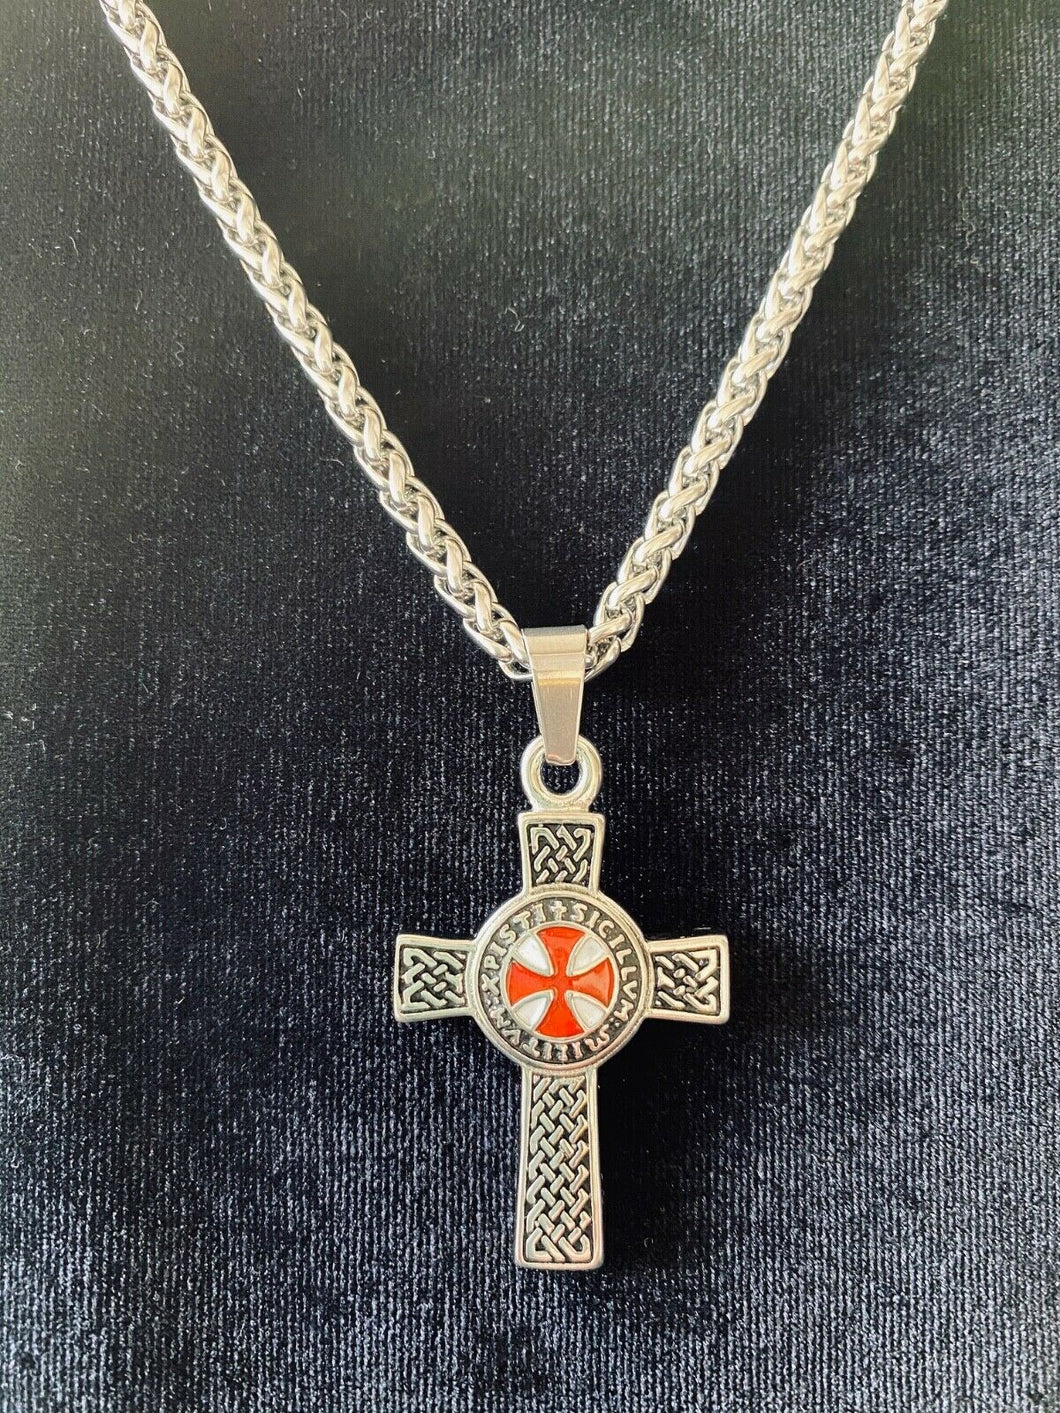 Large 316L Stainless Steel Medieval Crusader Men's Cross Pendant FREE Chain